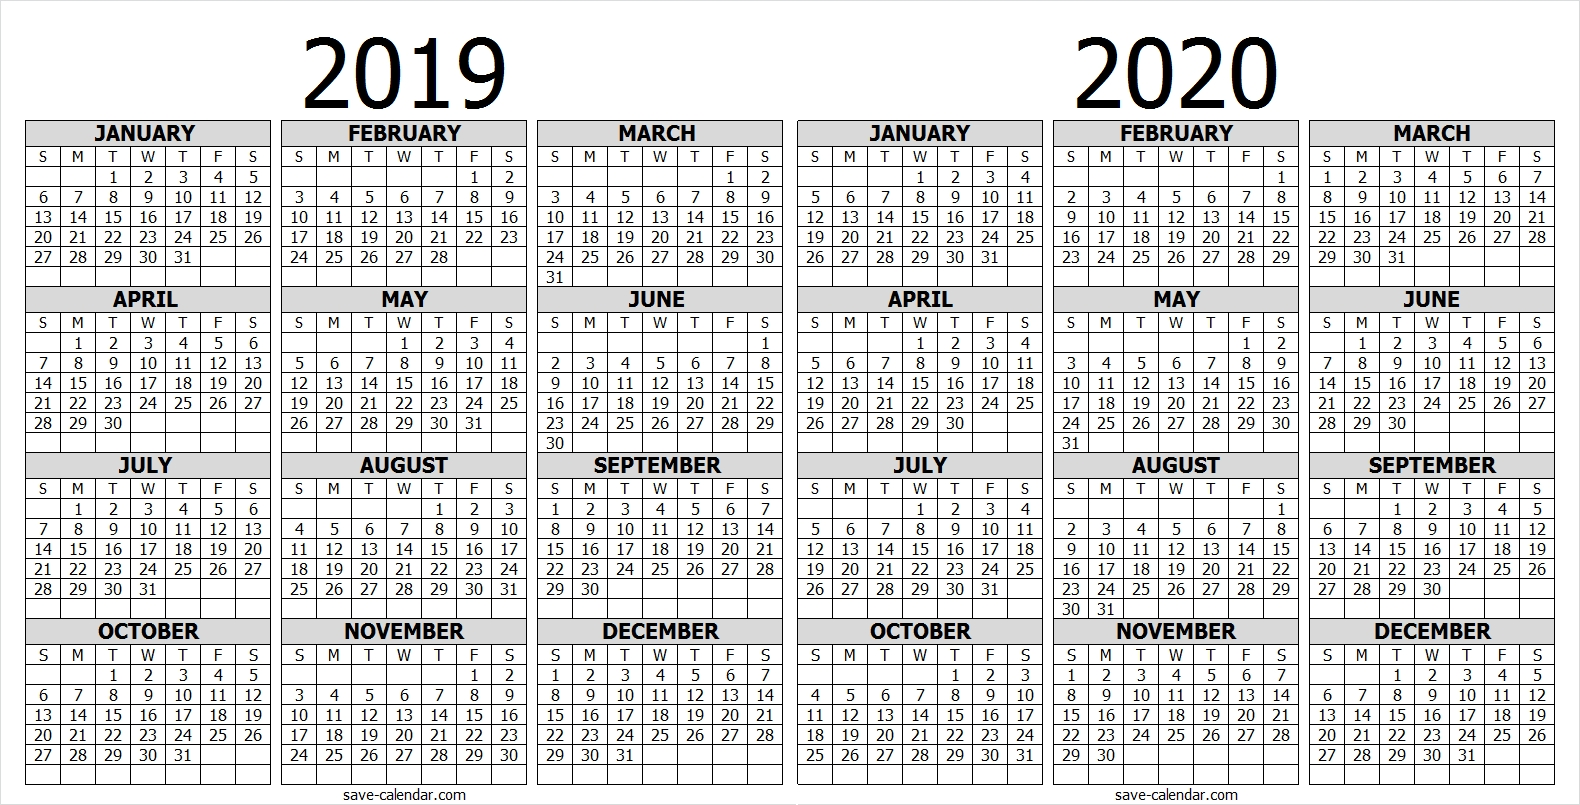 Calendar 2019 2020 One Page | 2019 Calendar | Free Calendar-2020 Calendar South Africa With Public Holidays